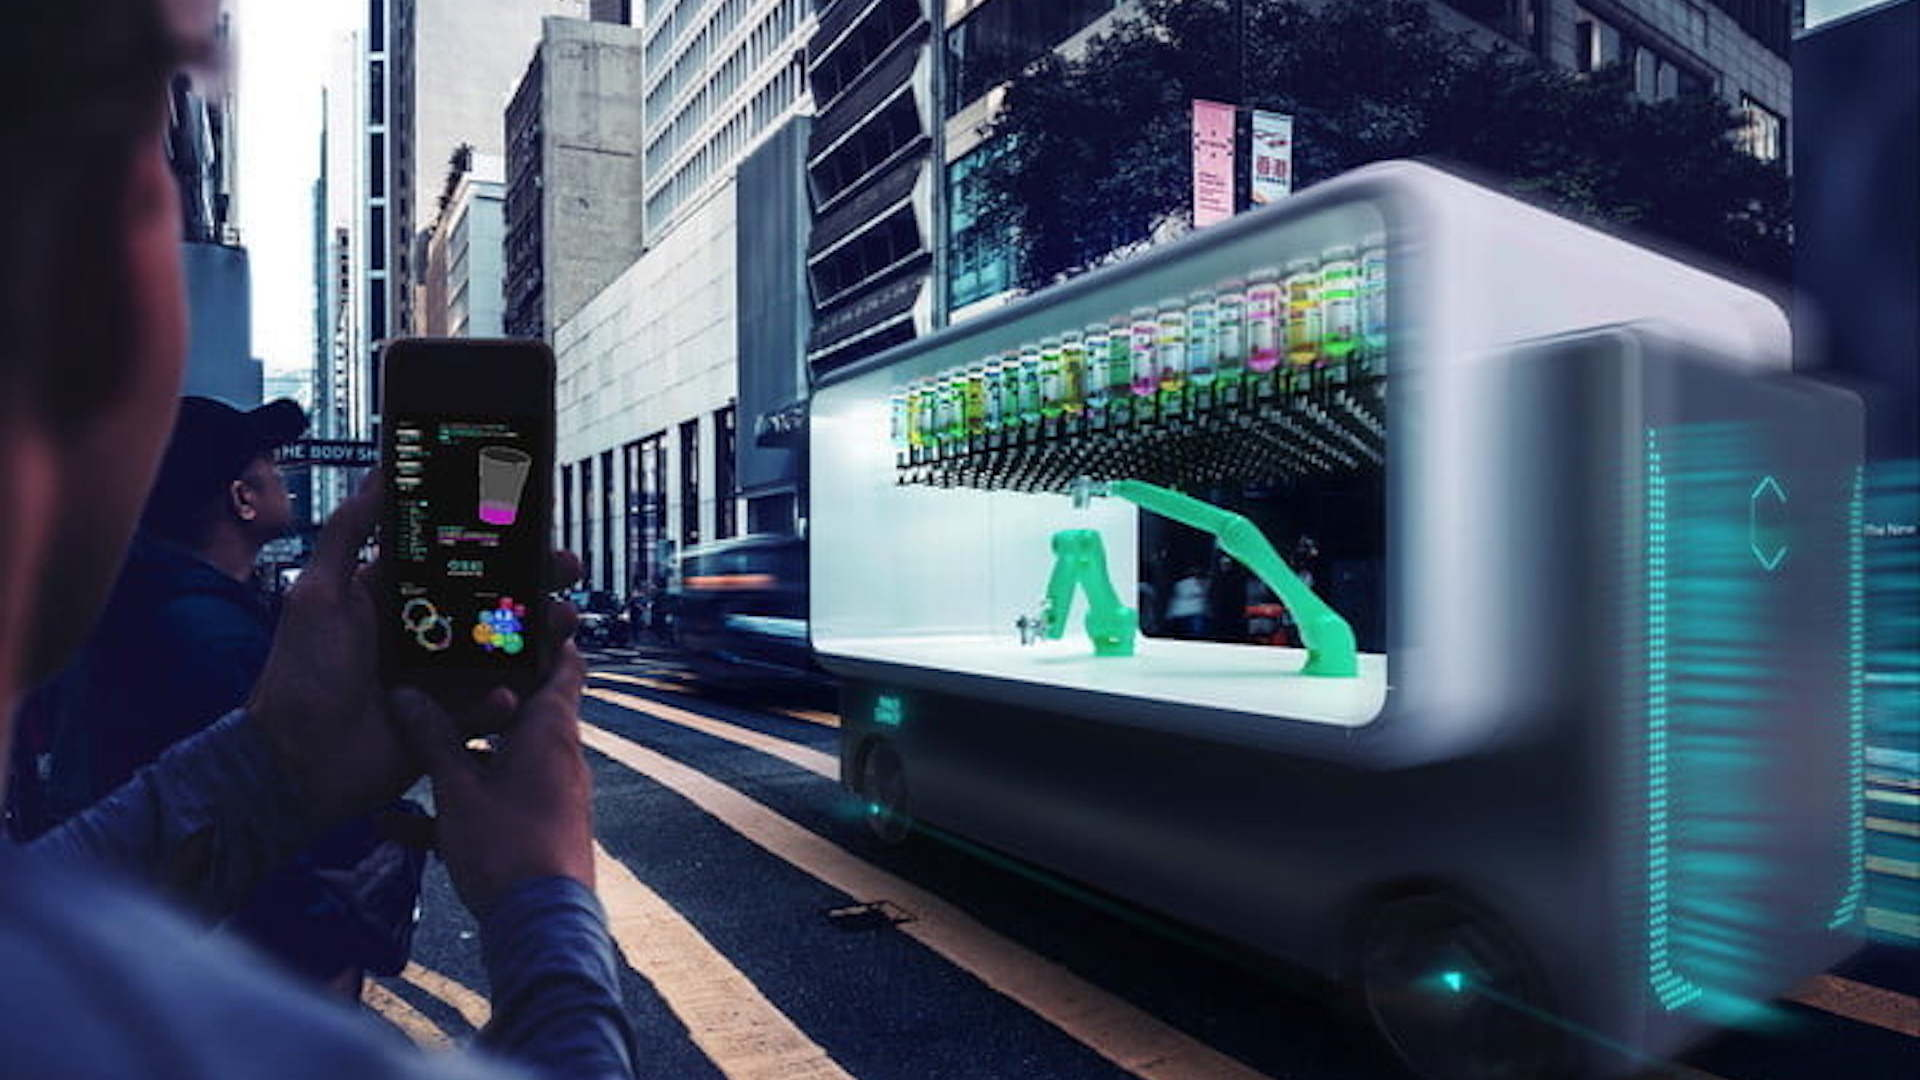 Makr Shakr Guido self-driving bar